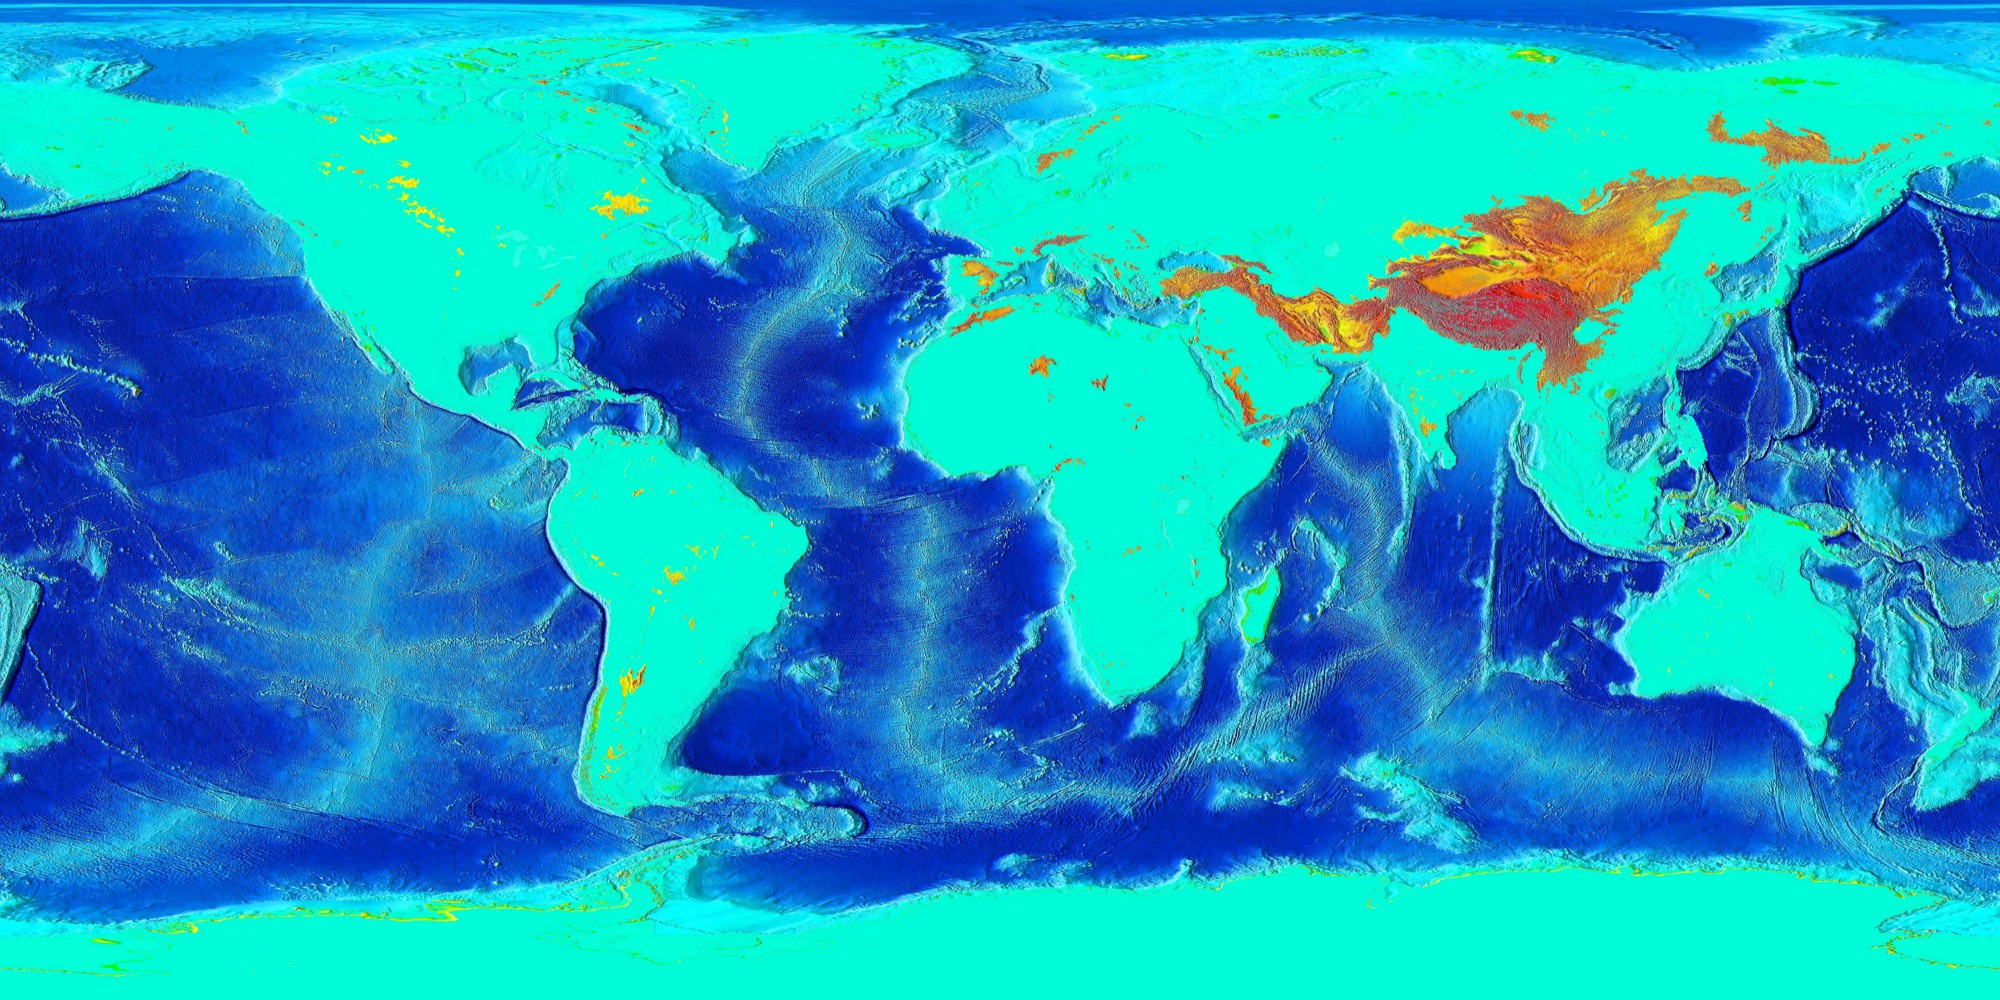 Prehistory of great lakes earth universe factory medium if our 21st century earth were to suffer the same fate great lakes earth suffered from 13 billion to 750 million years ago it would have looked like this publicscrutiny Images